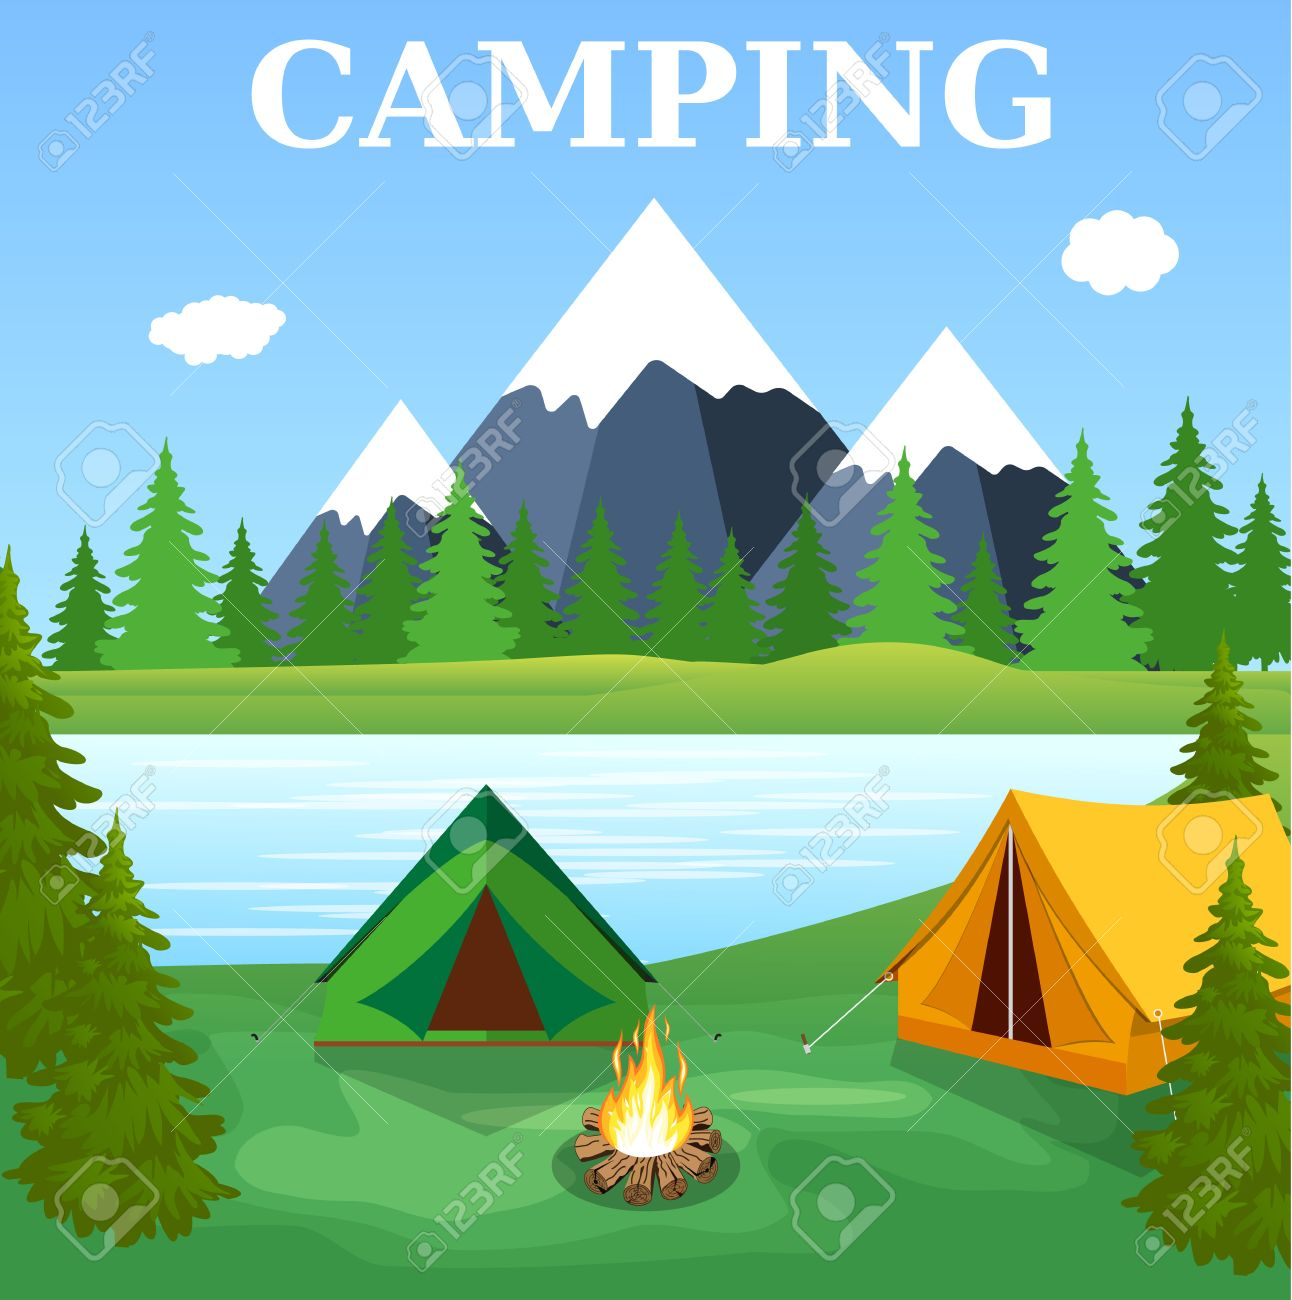 Vector Flat Illustration Camping Nature Background With Grass